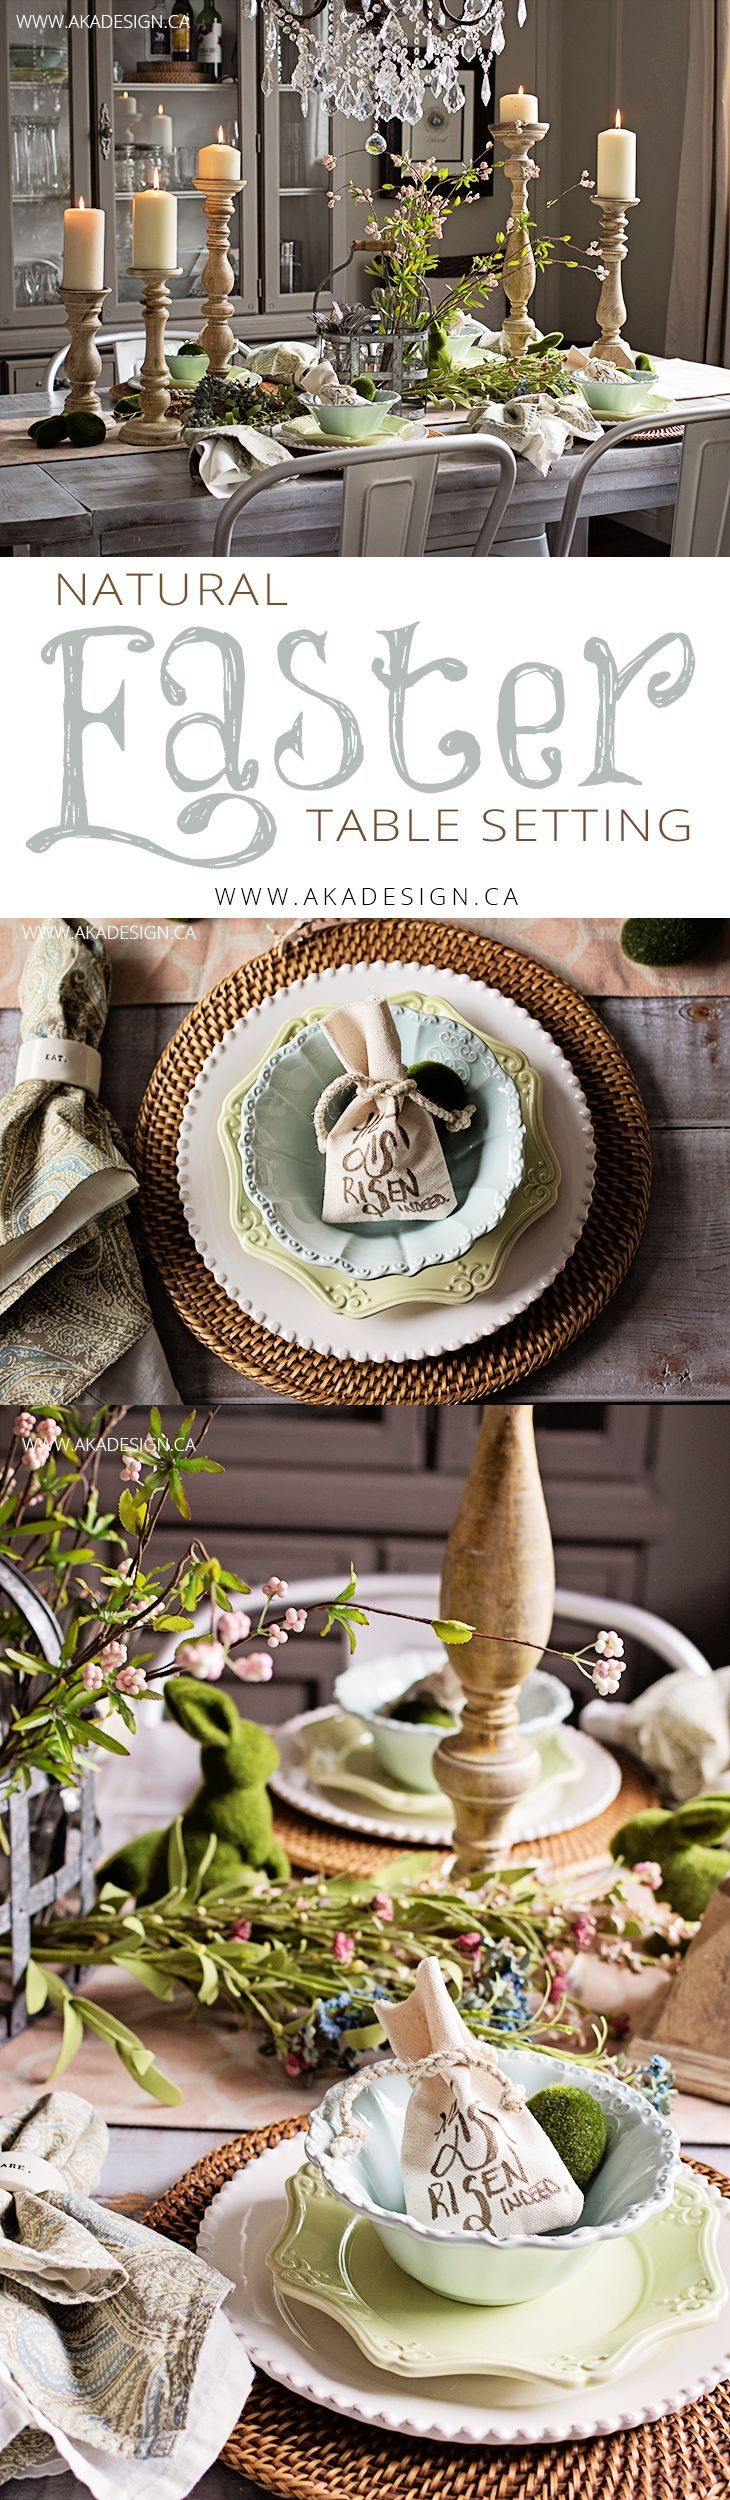 535 best easter & spring tablescapes images on pinterest